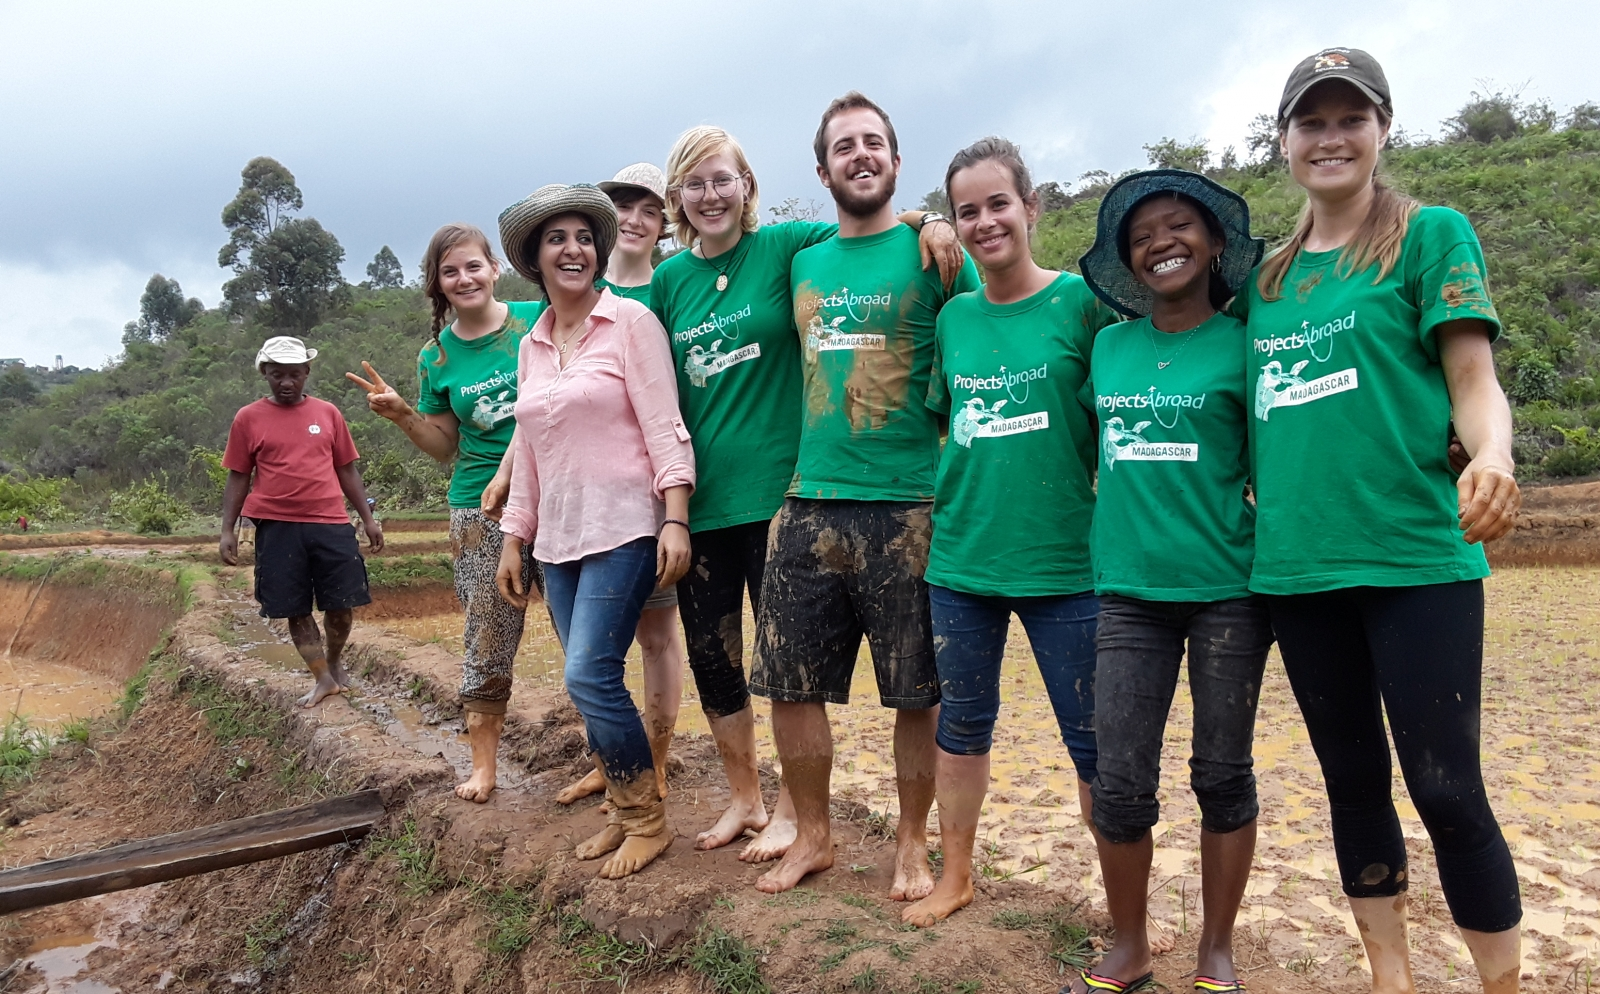 A group of muddy recent graduates take a break from planting rice in Madagascar during their volunteer abroad experience.